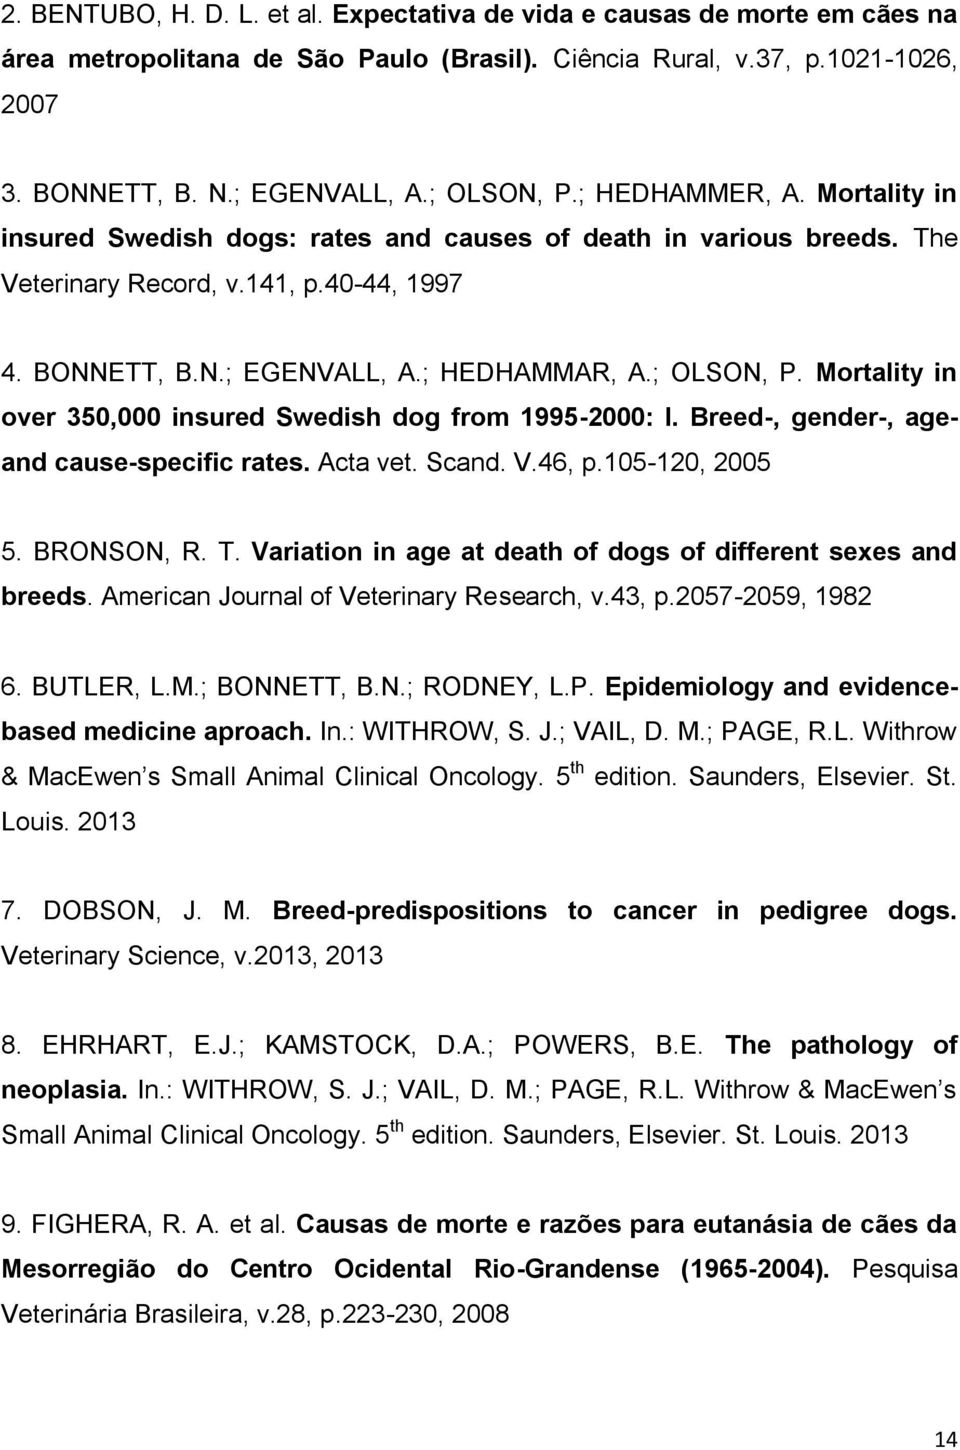 Mortality in over 350,000 insured Swedish dog from 1995-2000: I. Breed-, gender-, age- and cause-specific rates. Acta vet. Scand. V.46, p.105-120, 2005 5. BRONSON, R. T.